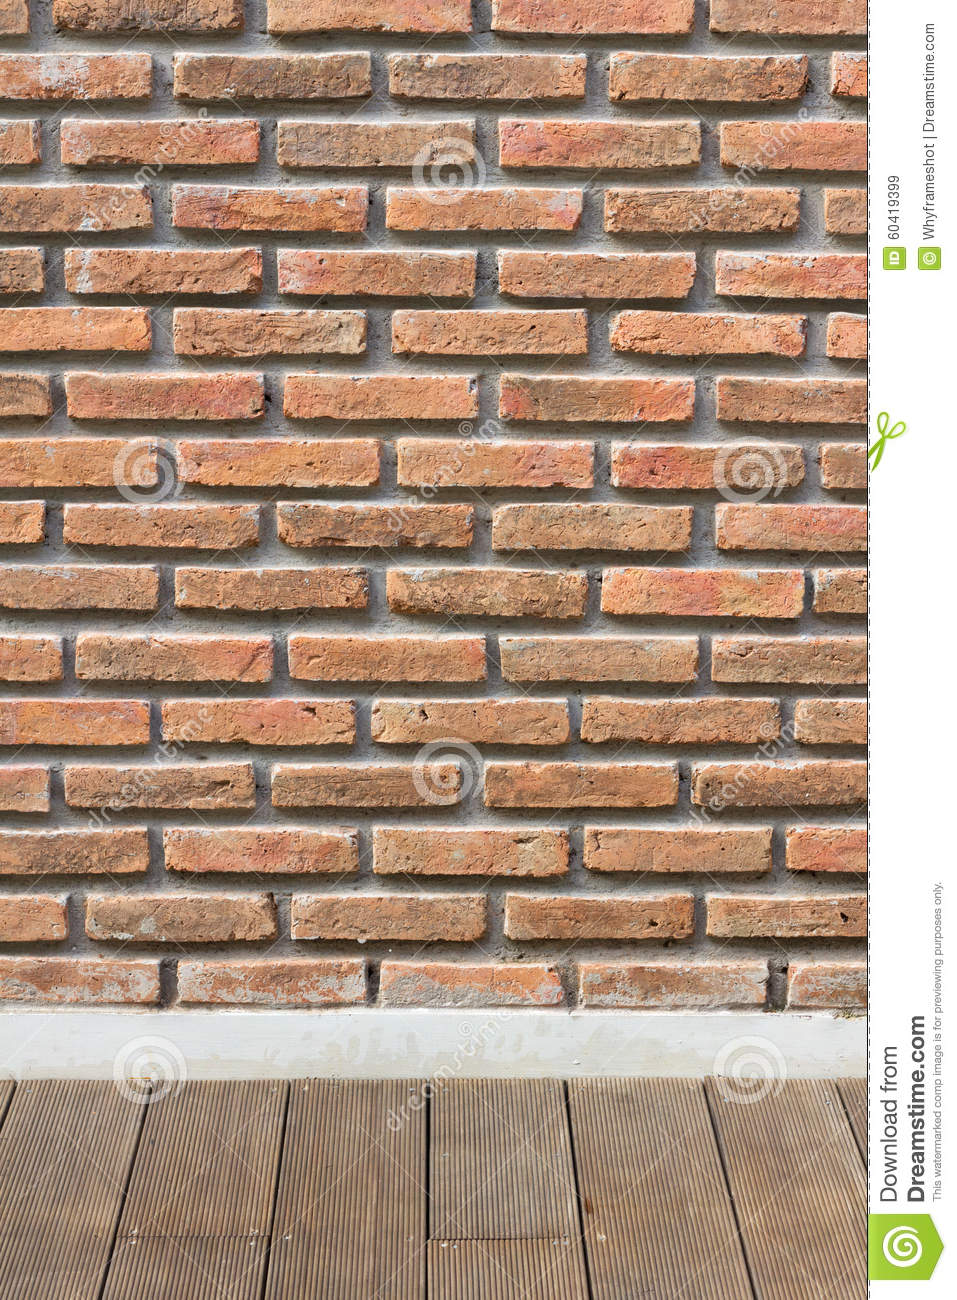 BRICK WALL WITH WOODEN FLOOR Stock Photo - Image: 60419399